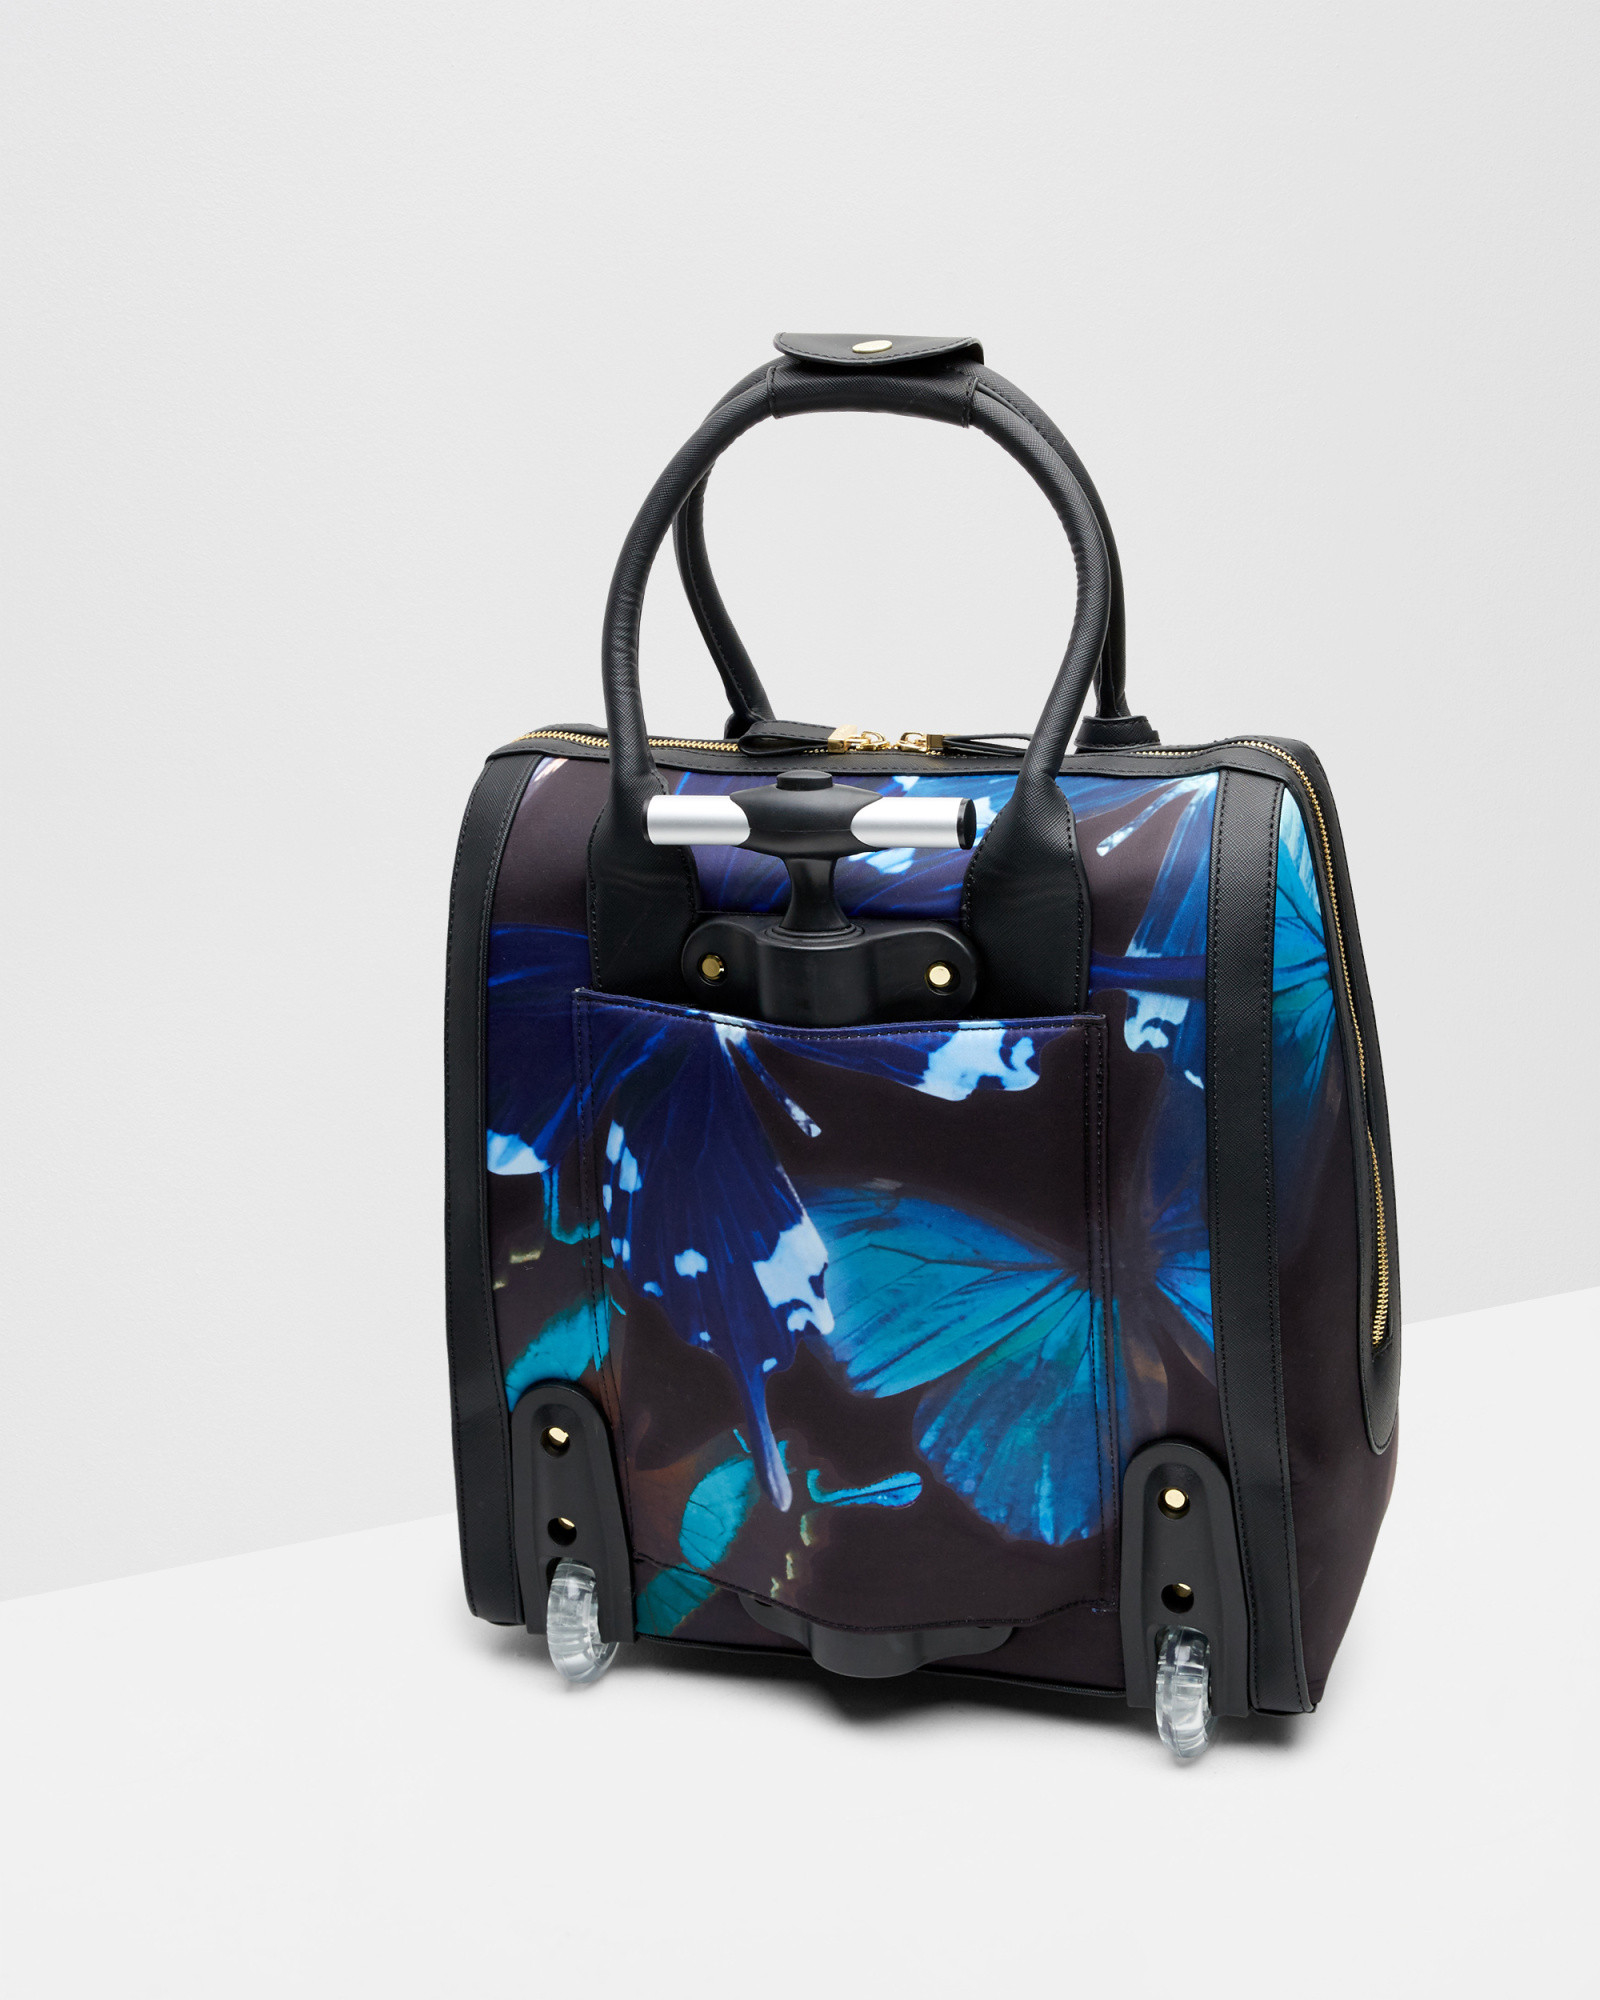 adbed4468cb7a Ted Baker Butterfly Travel Bag - Best Image Of Butterfly Imagevet.Co